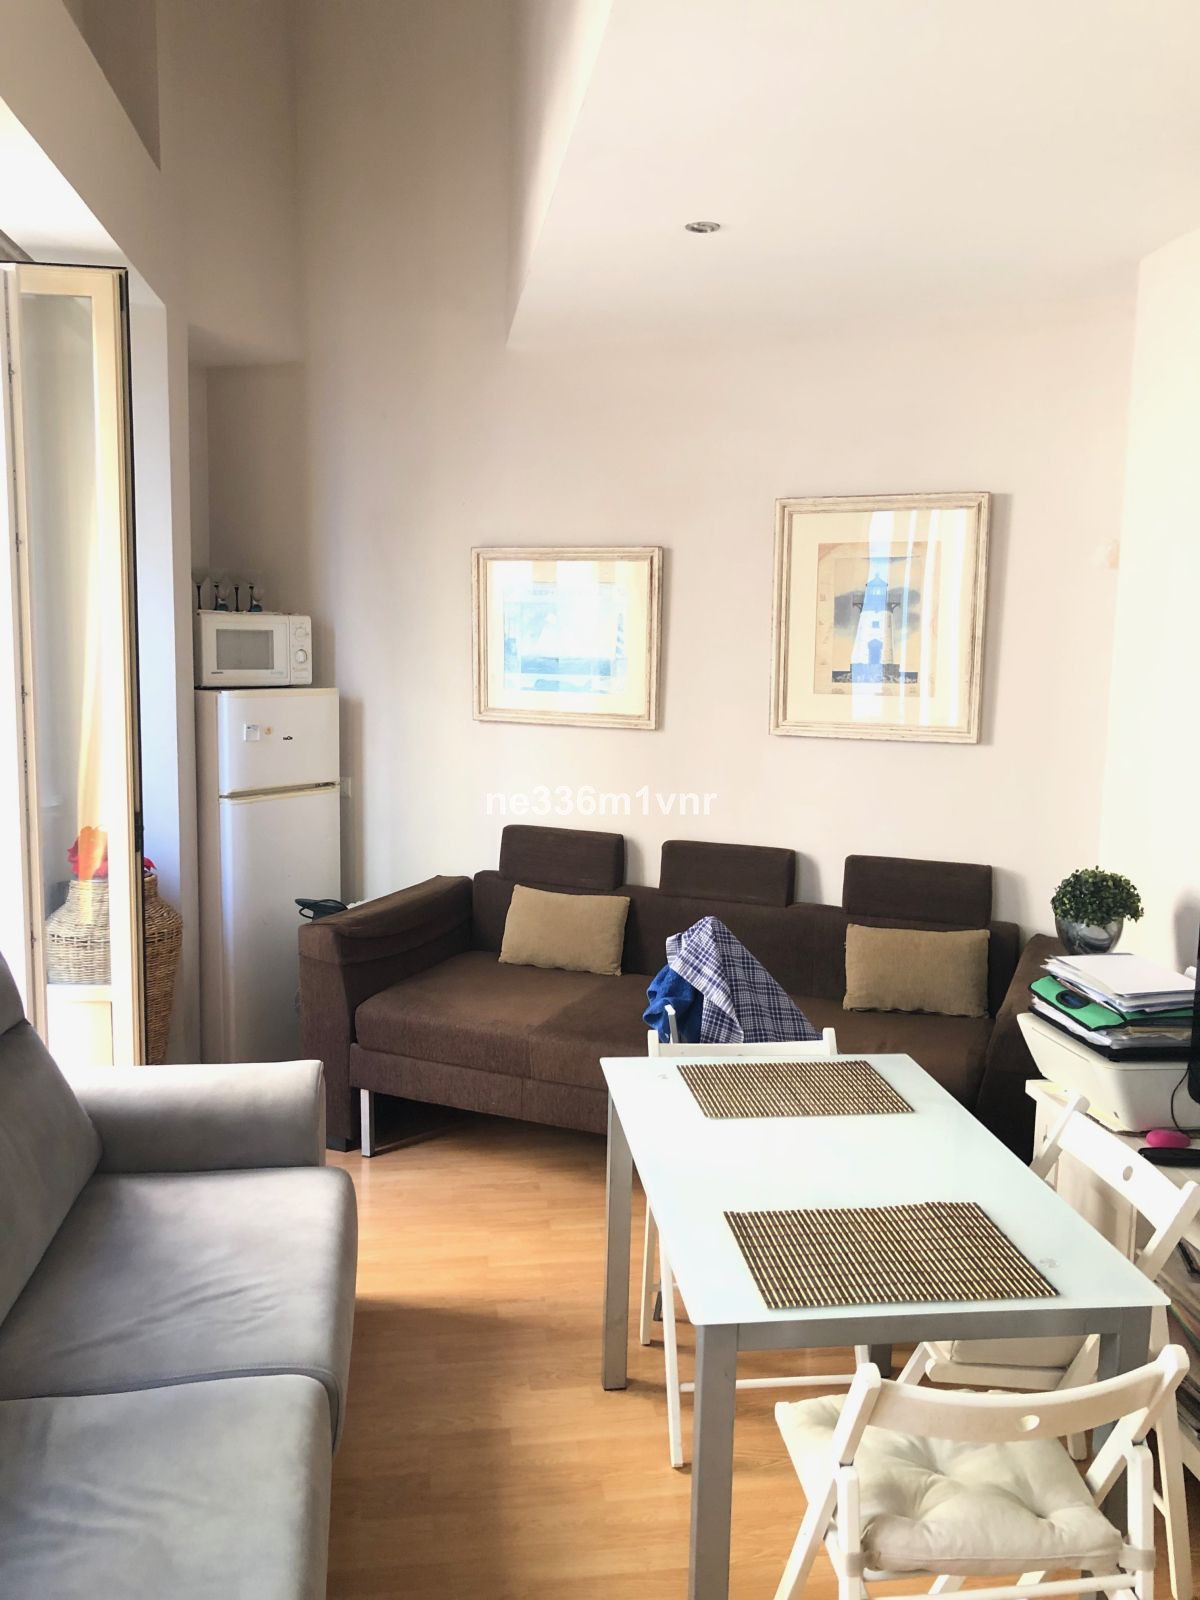 Apartment-study in the heart of downtown Malaga in renovated building, with floating platform, two b,Spain